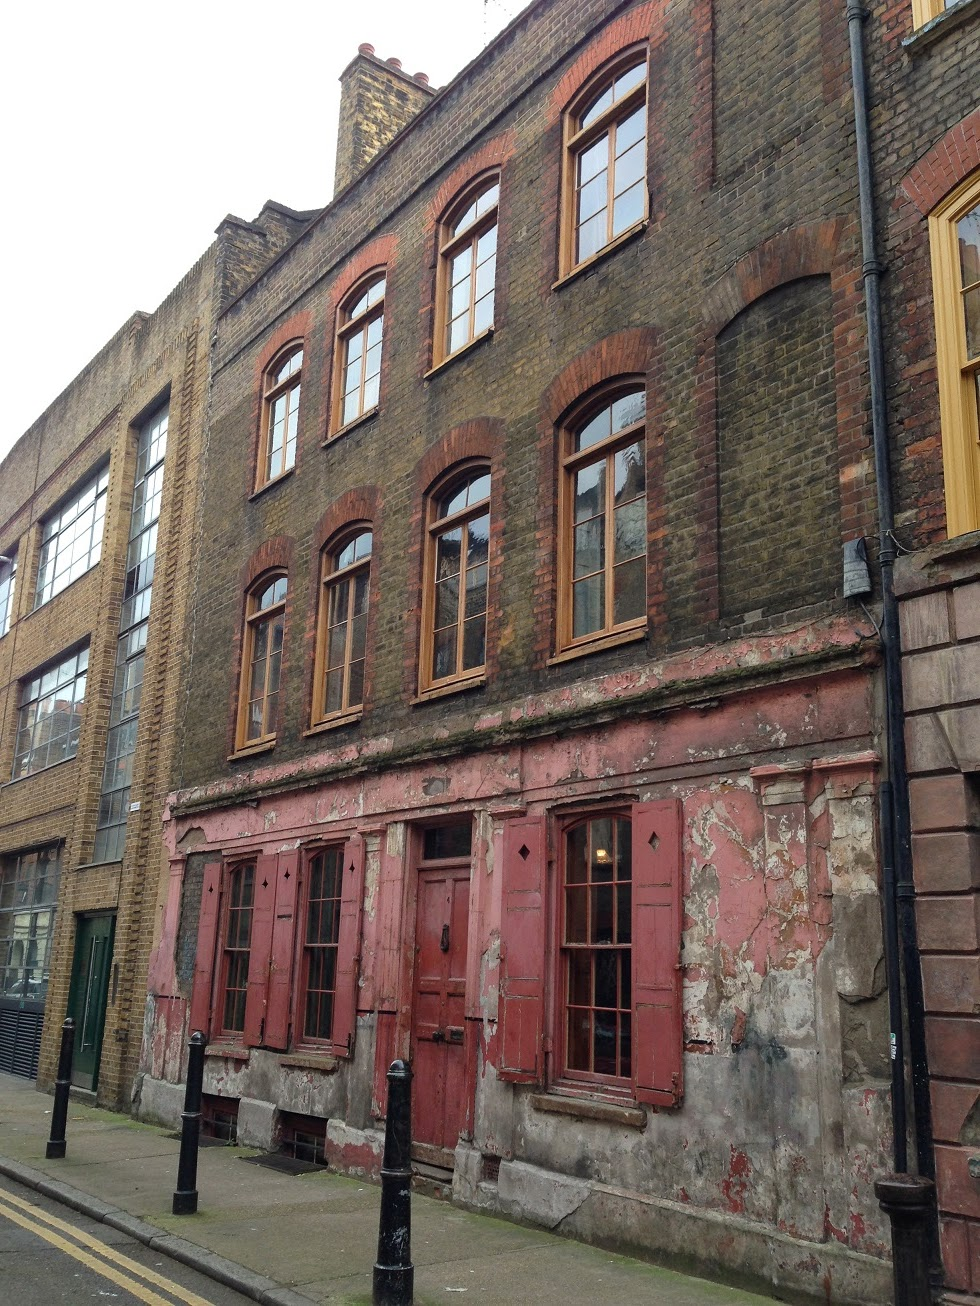 Old buildings, Shoreditch, London